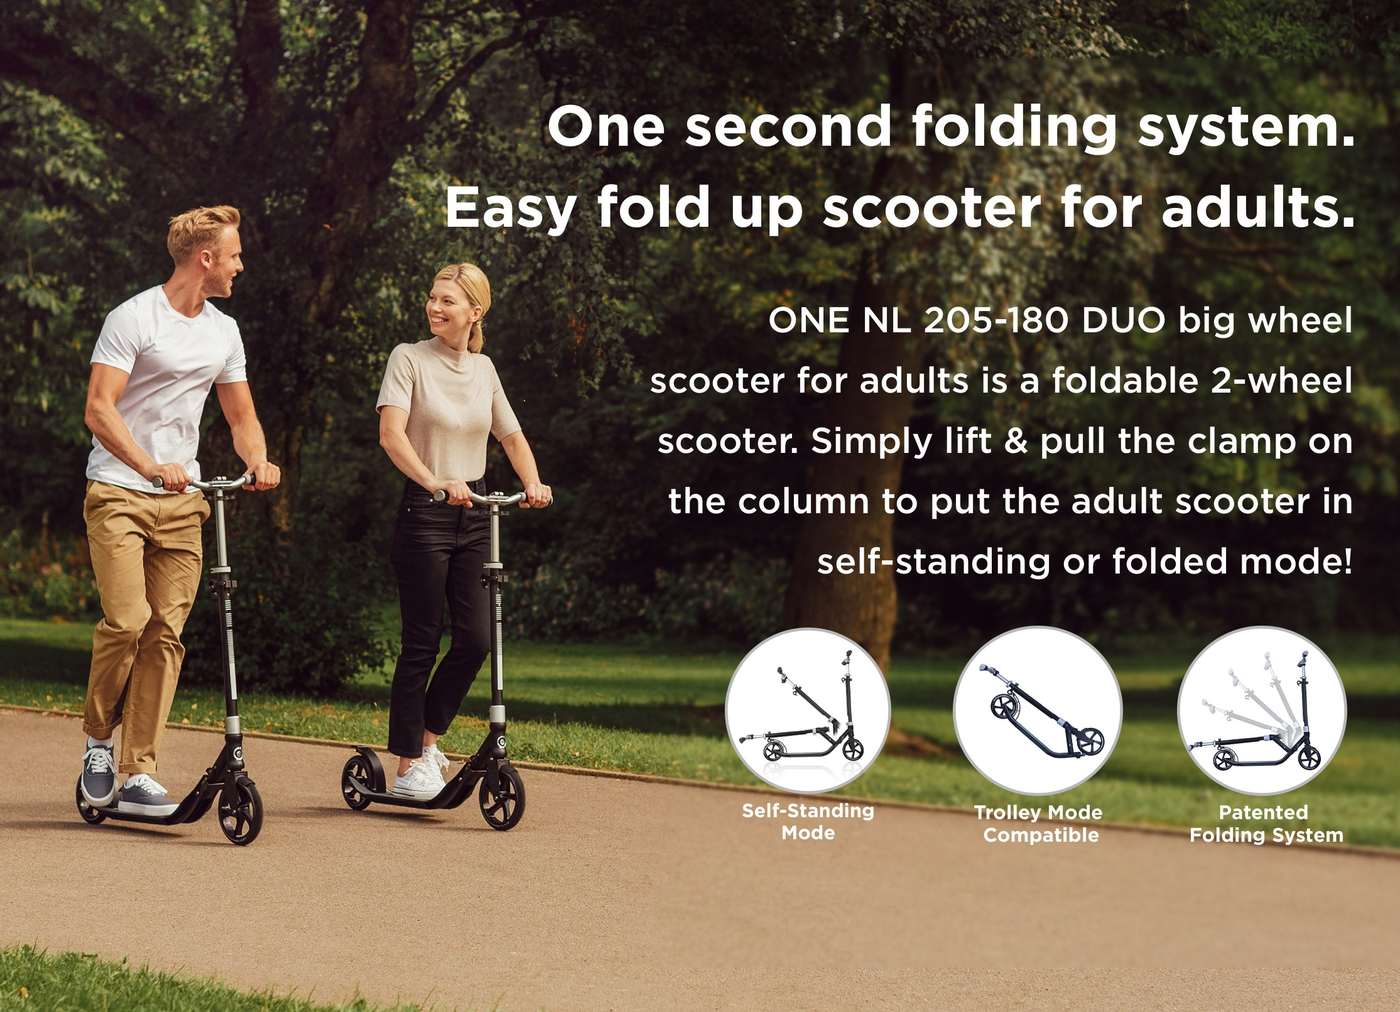 One second folding system. Easy fold up scooter for adults.